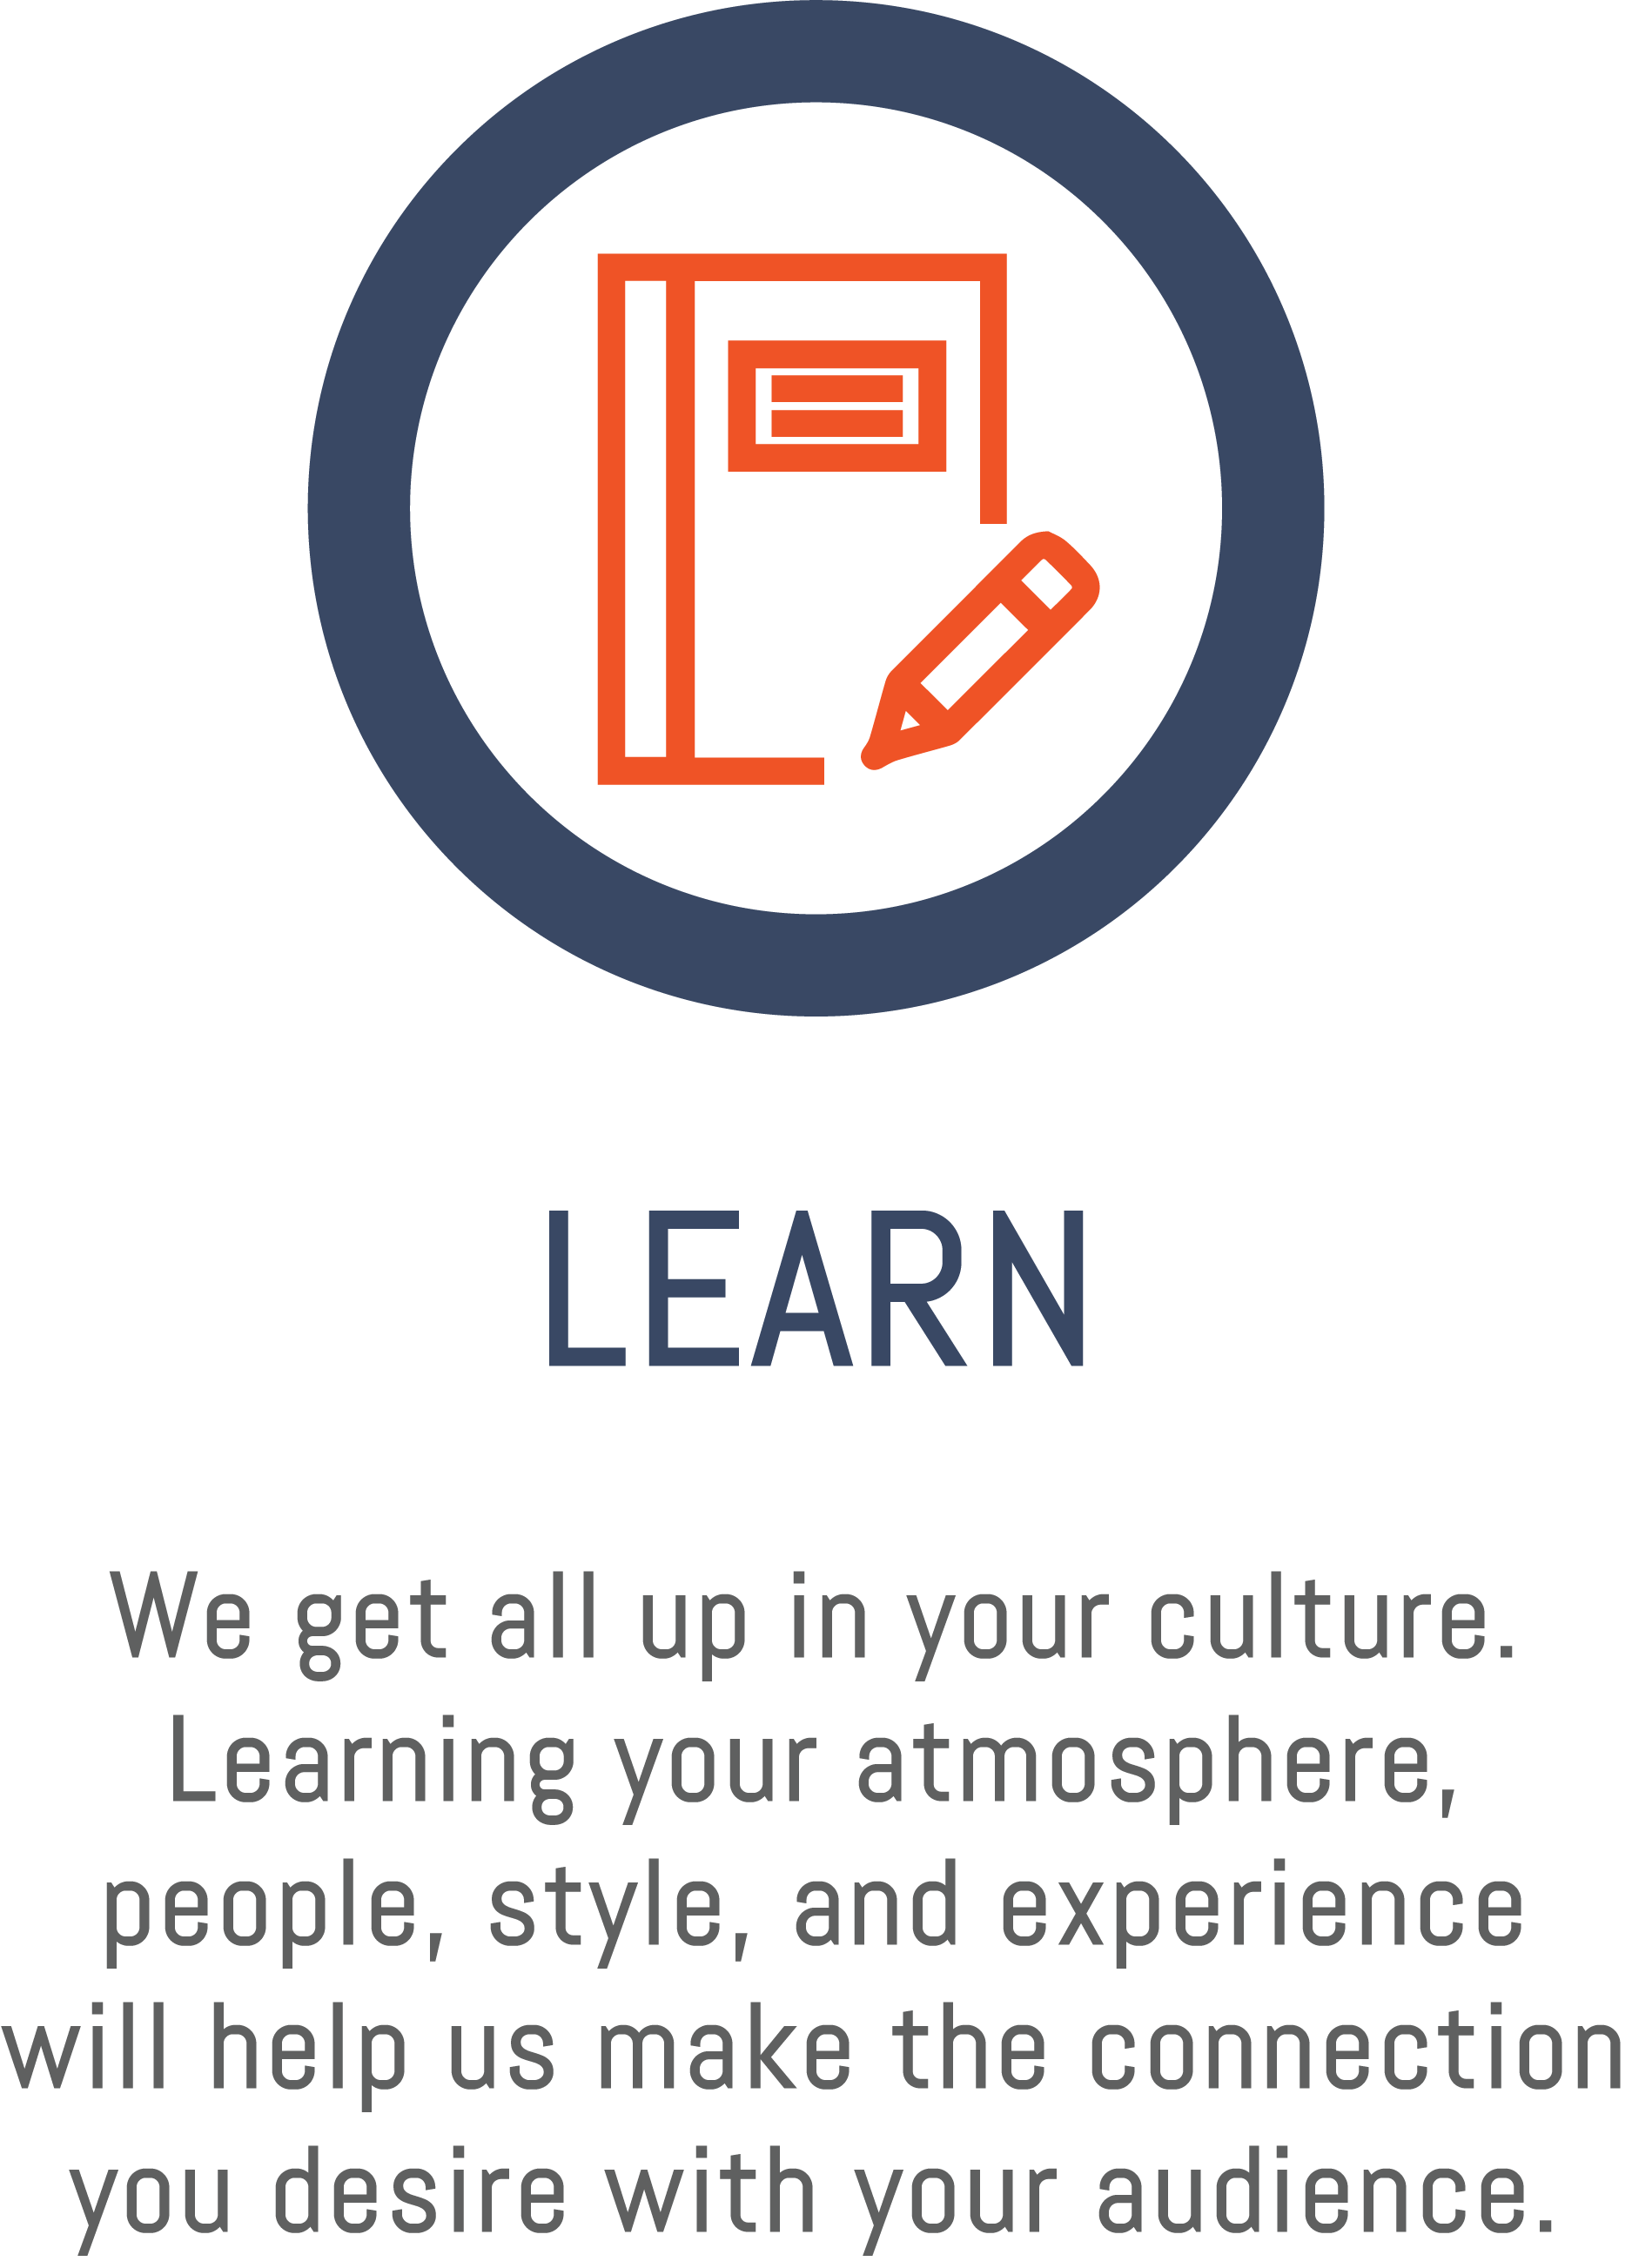 Learn-icon-2018 2.png